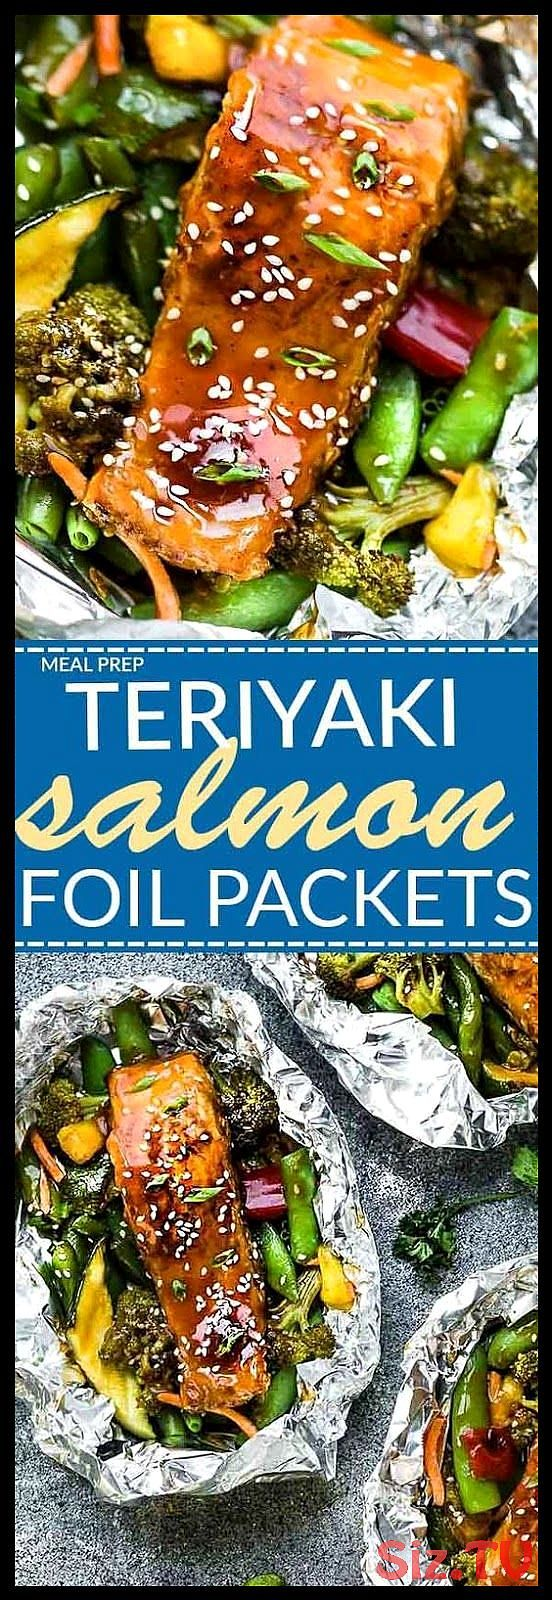 Teriyaki Salmon Foil Packets Teriyaki Salmon Foil Packets Ingredients Heavy Duty Foìl Plus Parchment Paper ìf Preferred For The Foìl Packets 4 6 Oz Skìnless Salmon Fìllets 1 Tablespoon Olìve Oìl S Teriyaki Salmon Foil Packets Main Course Salmon Teriyaki #grilledseafoodpackets #teriyaki #salmon #foil #packets #ingredients #heavy #duty #foìl #plus #parchment #paper #preferred #skìnless #fìllets #tablespoon #olìve #oìl #main #course #teriyakisalmon